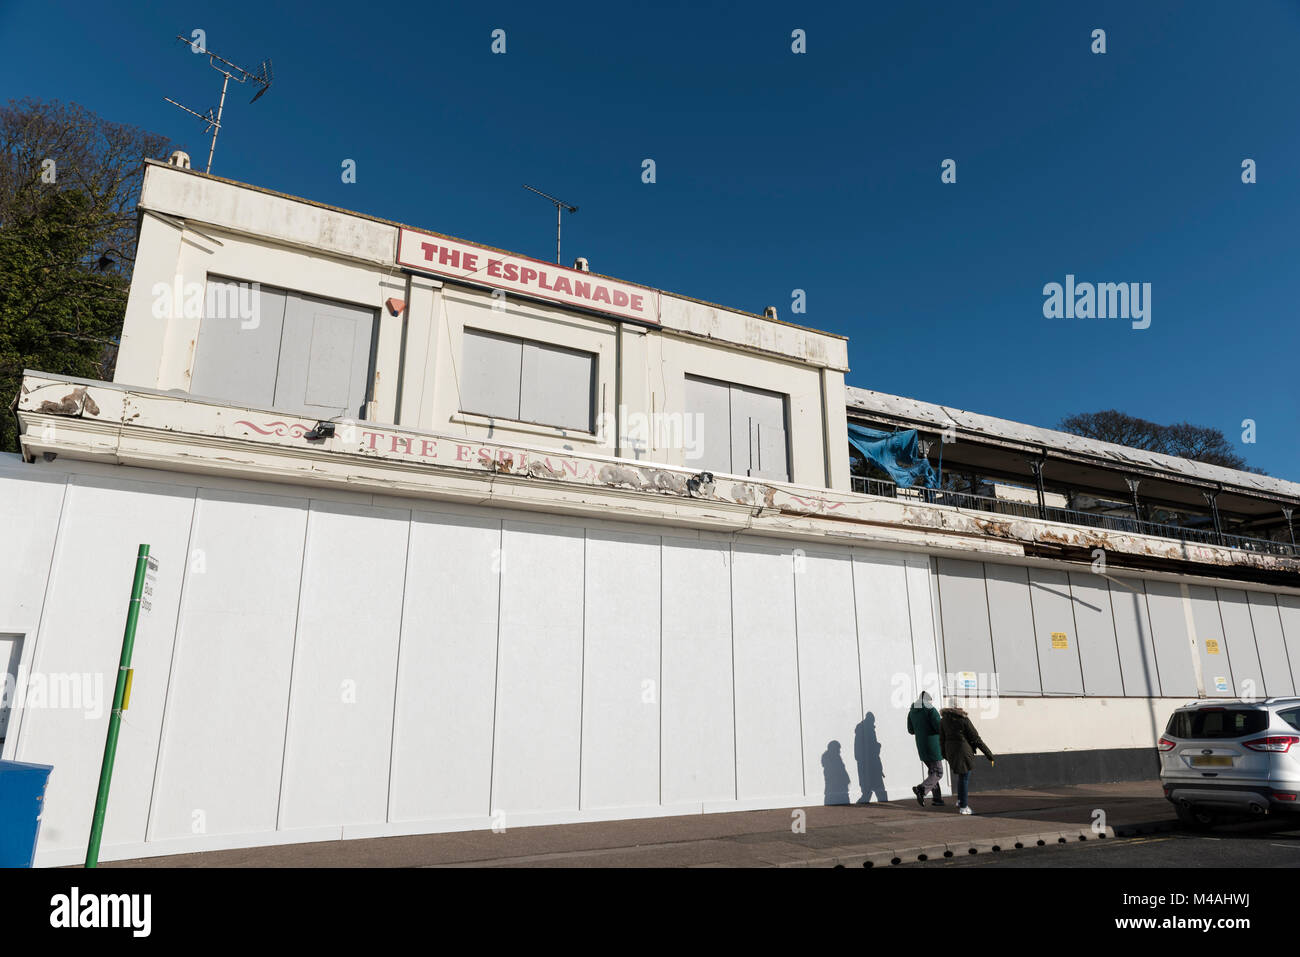 The Esplanade public house, closed wating for redevelopment. - Stock Image